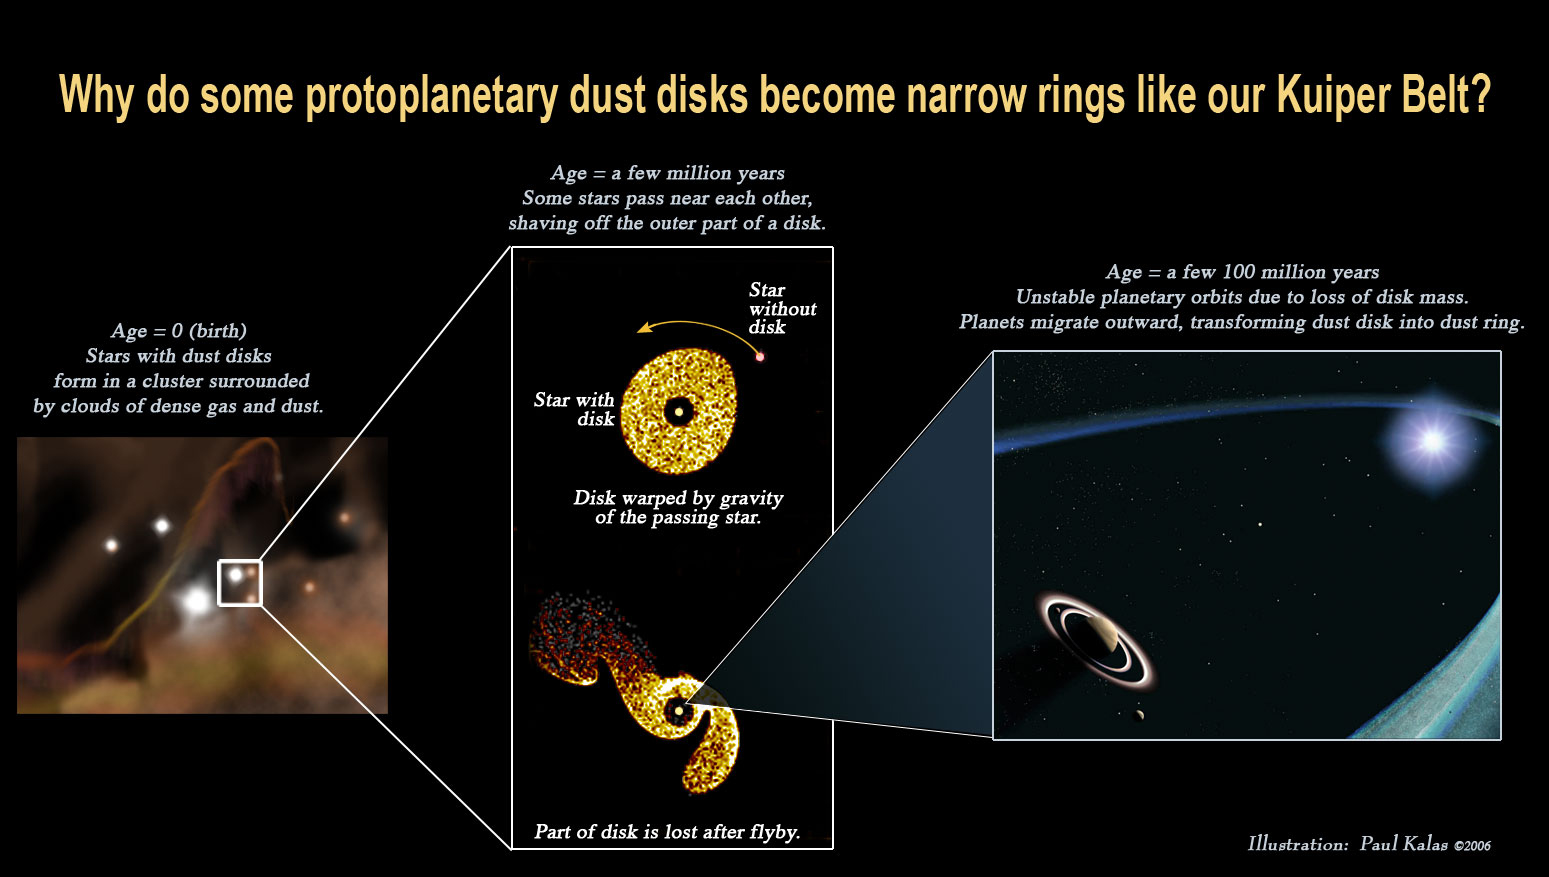 hight resolution of diagram showing why some protoplanetary dust disks become narrow rings